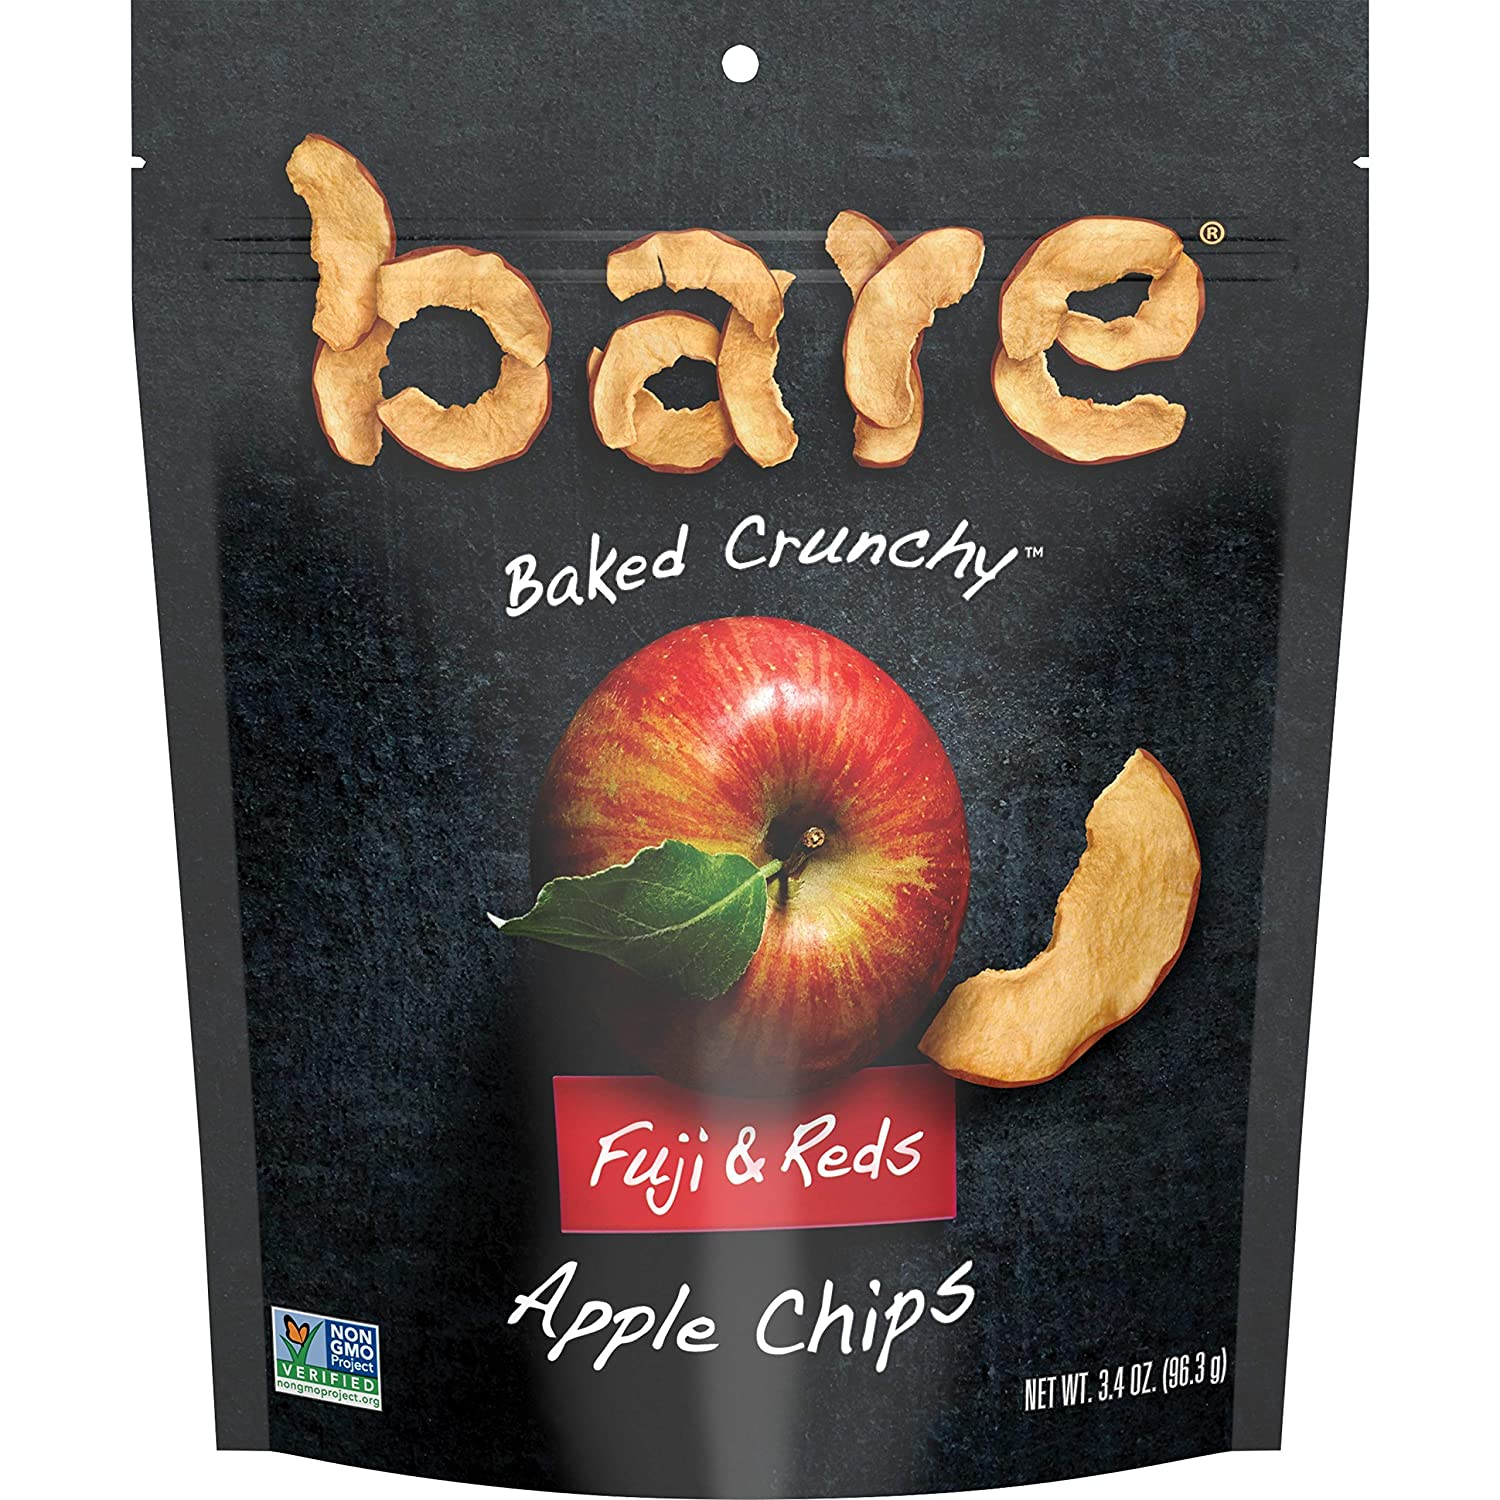 cheap Bare Fruit Max 43% OFF Naturally Baked Crunchy 3.4 Apple Chips Fuji Reds